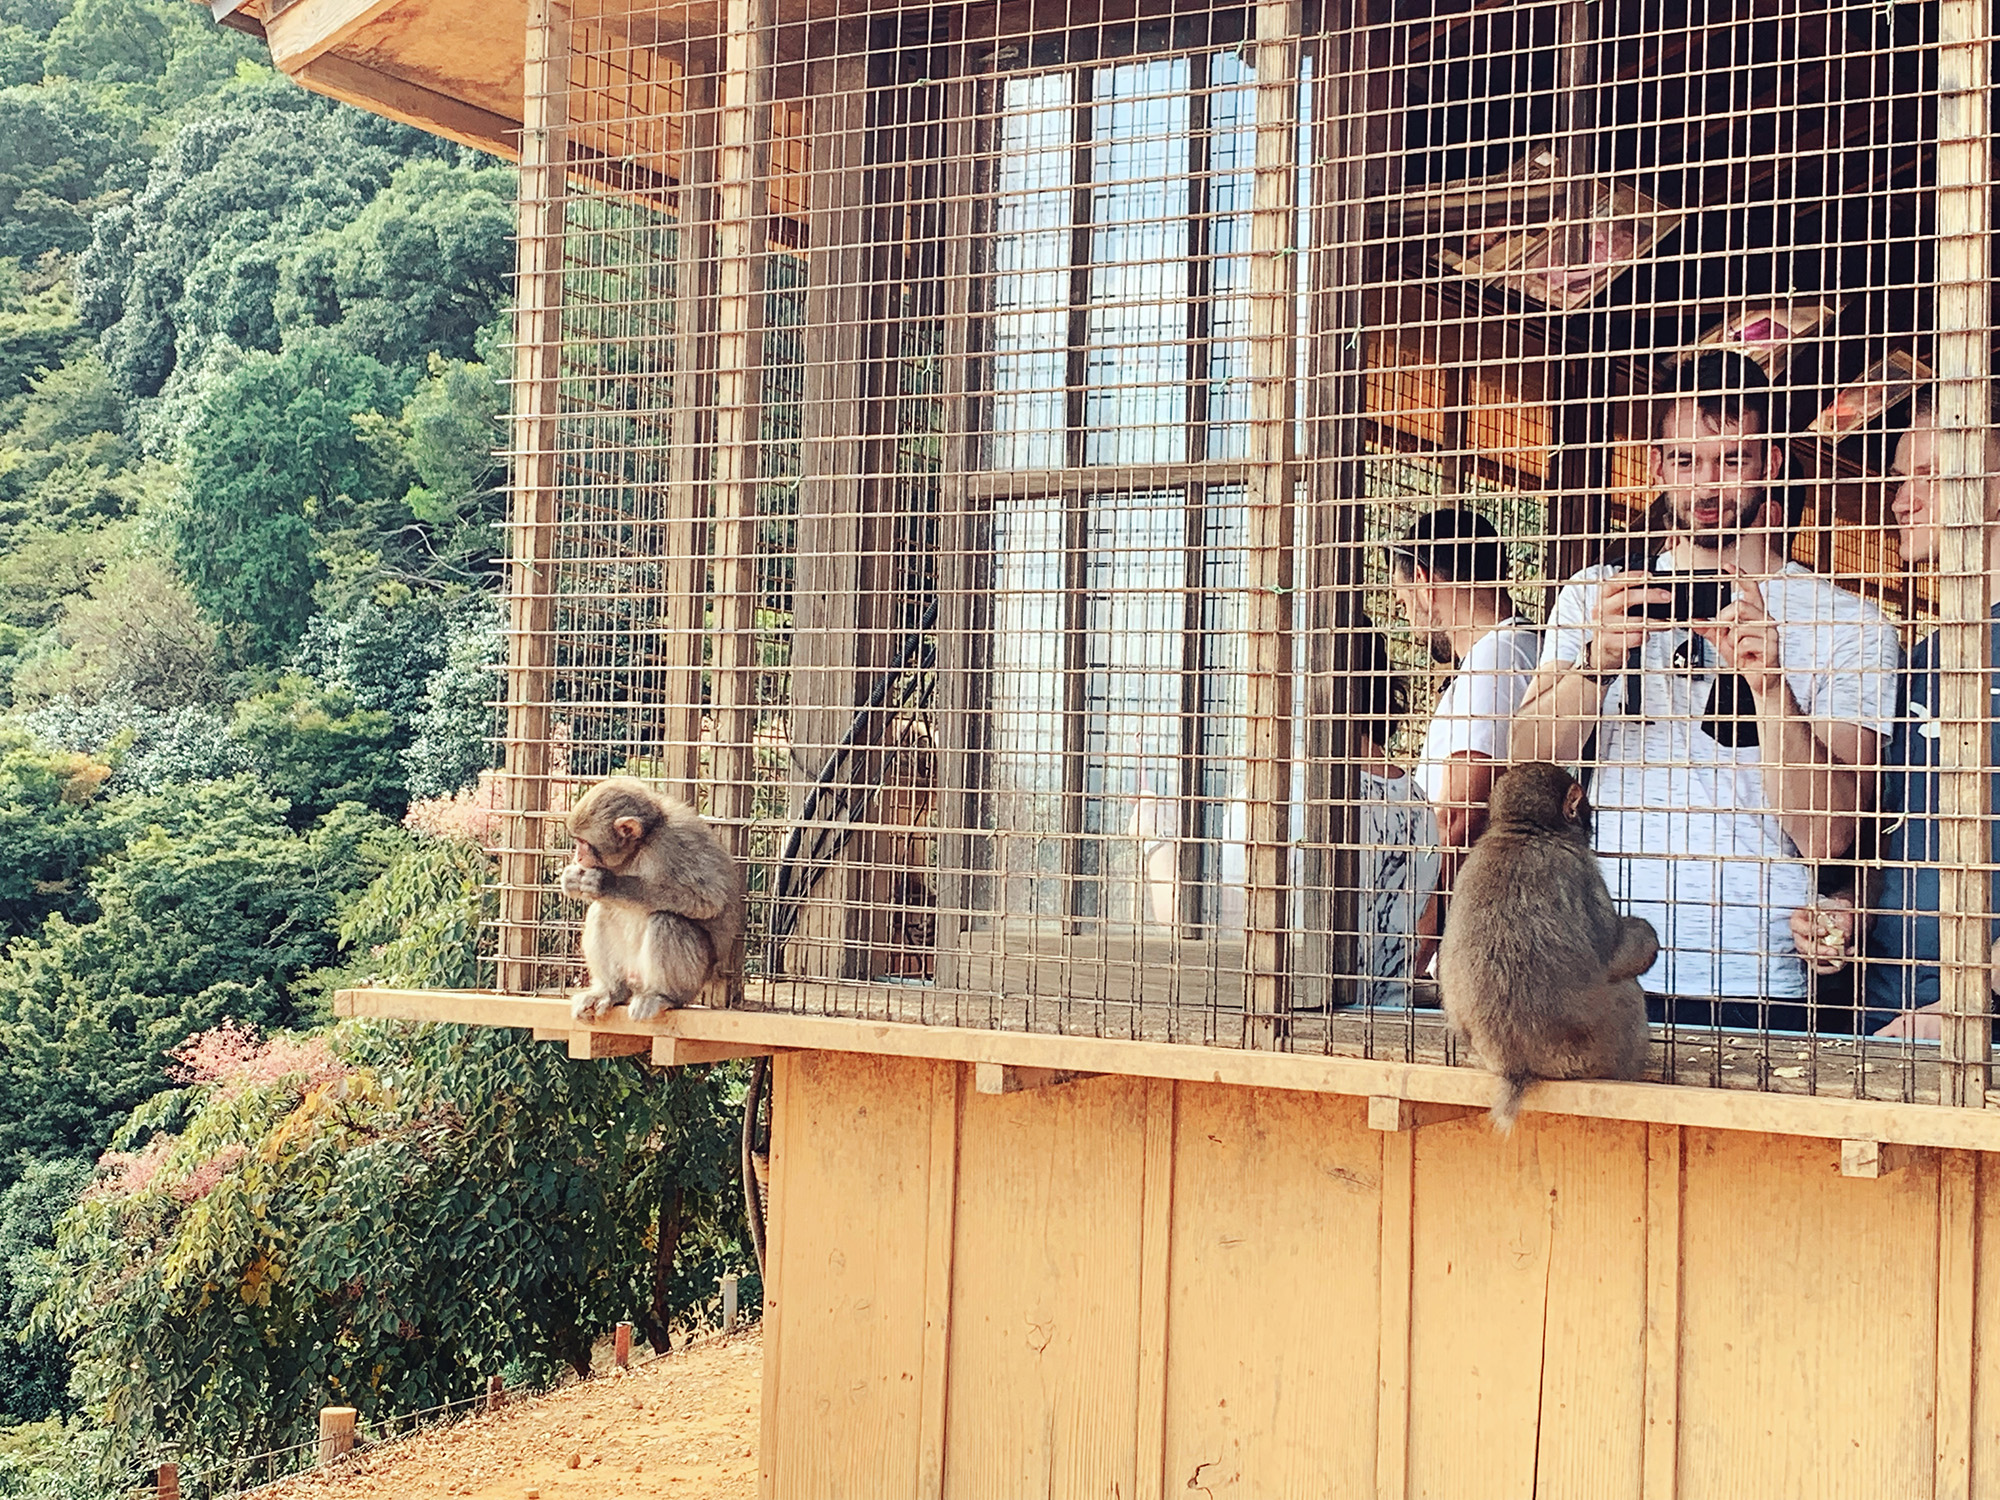 Kyoto Guide - Monkey Park